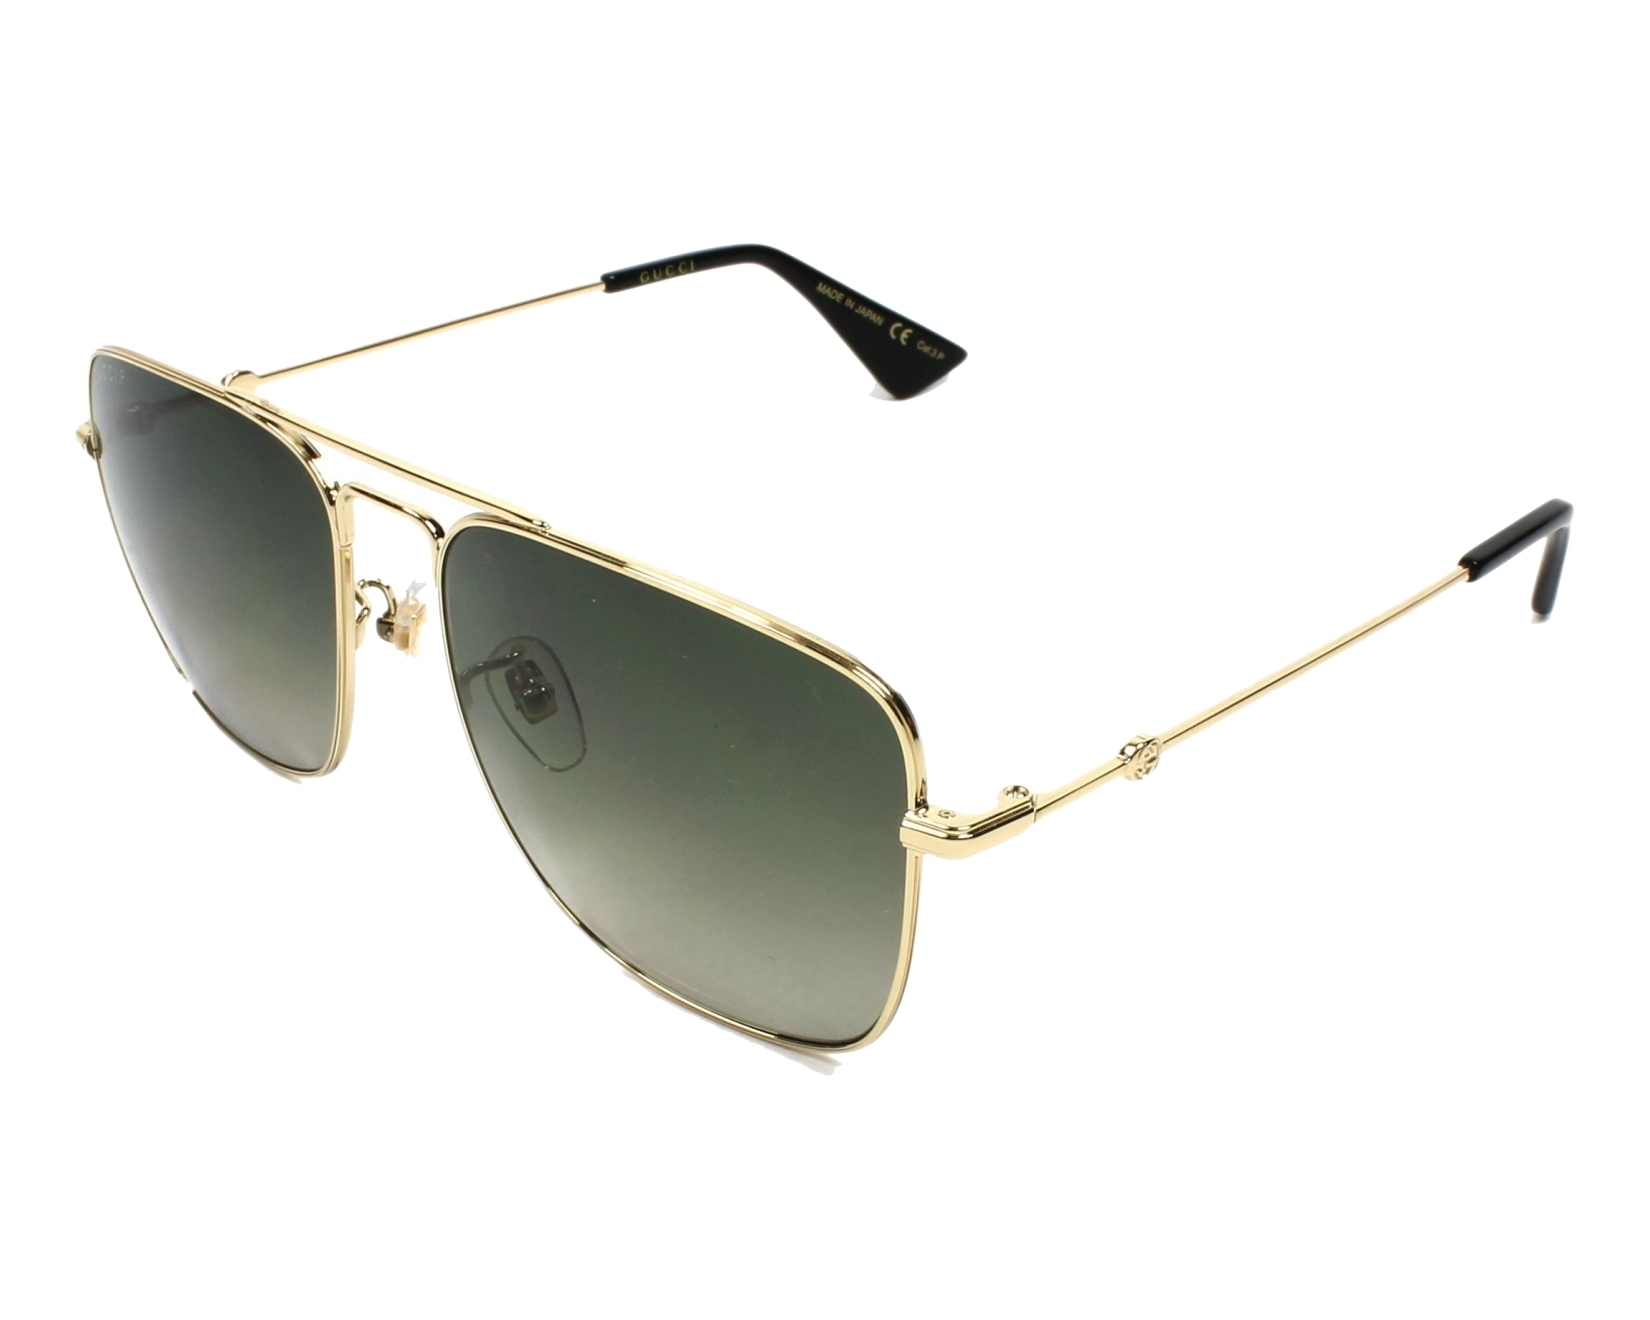 9f3bf792330 Sunglasses Gucci GG-0108-S 006 55-16 Gold profile view